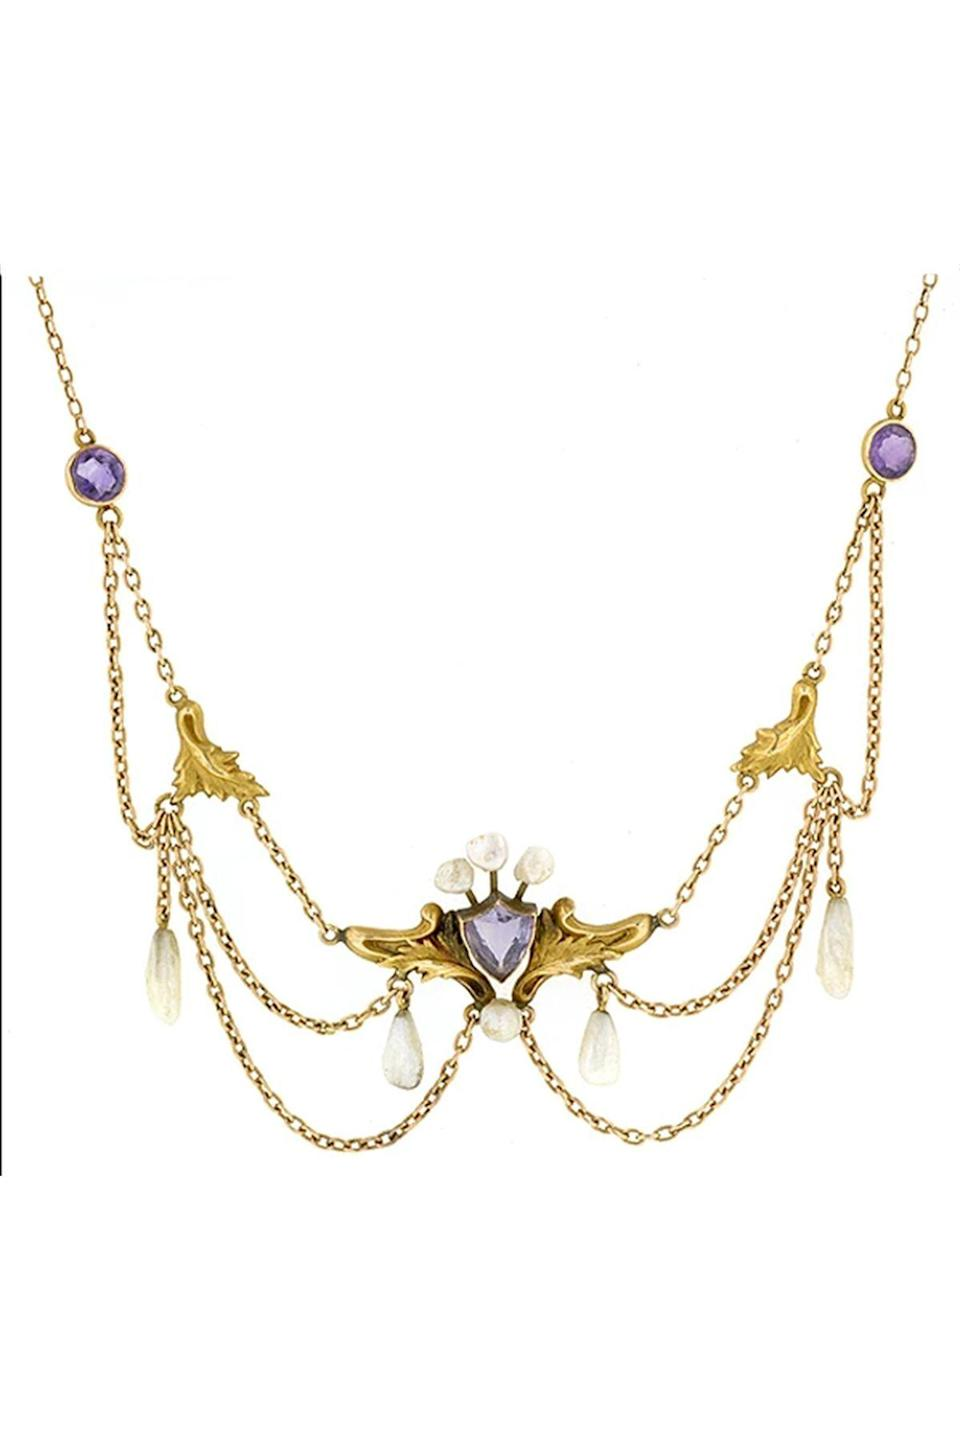 """<p><strong>Doyle & Doyle</strong></p><p>doyledoyle.com</p><p><strong>$1600.00</strong></p><p><a href=""""https://doyledoyle.com/products/art-nouveau-amethyst-pearl-festoon-necklace-2"""" rel=""""nofollow noopener"""" target=""""_blank"""" data-ylk=""""slk:Shop Now"""" class=""""link rapid-noclick-resp"""">Shop Now</a></p><p>The draping chains of this amethyst and pearl festoon are ornamented by gold leaves and pearls—a hallmark of the design era. </p>"""